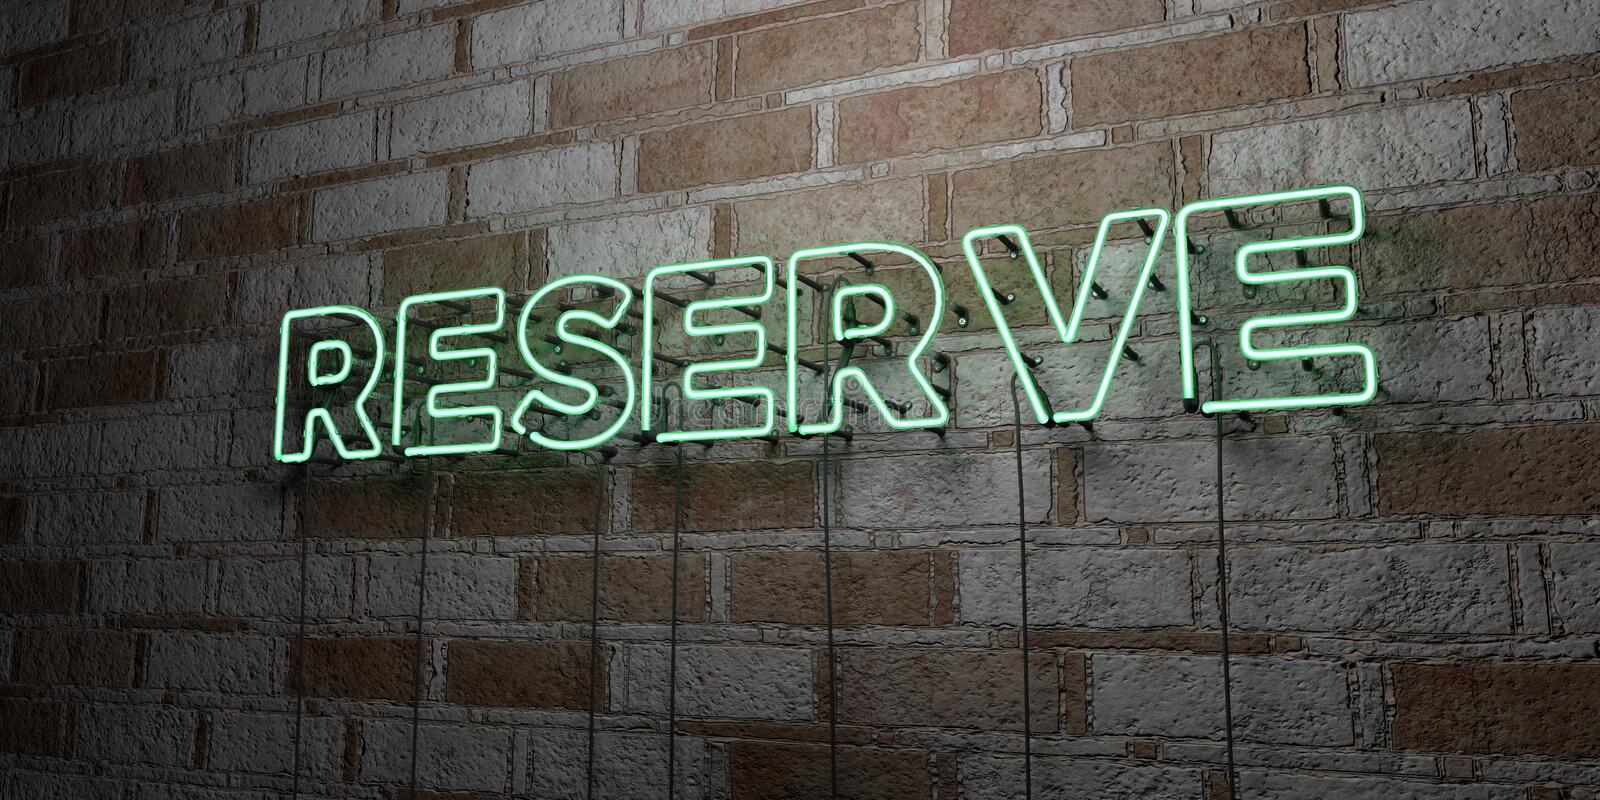 RESERVE - Glowing Neon Sign on stonework wall - 3D rendered royalty free stock illustration vector illustration